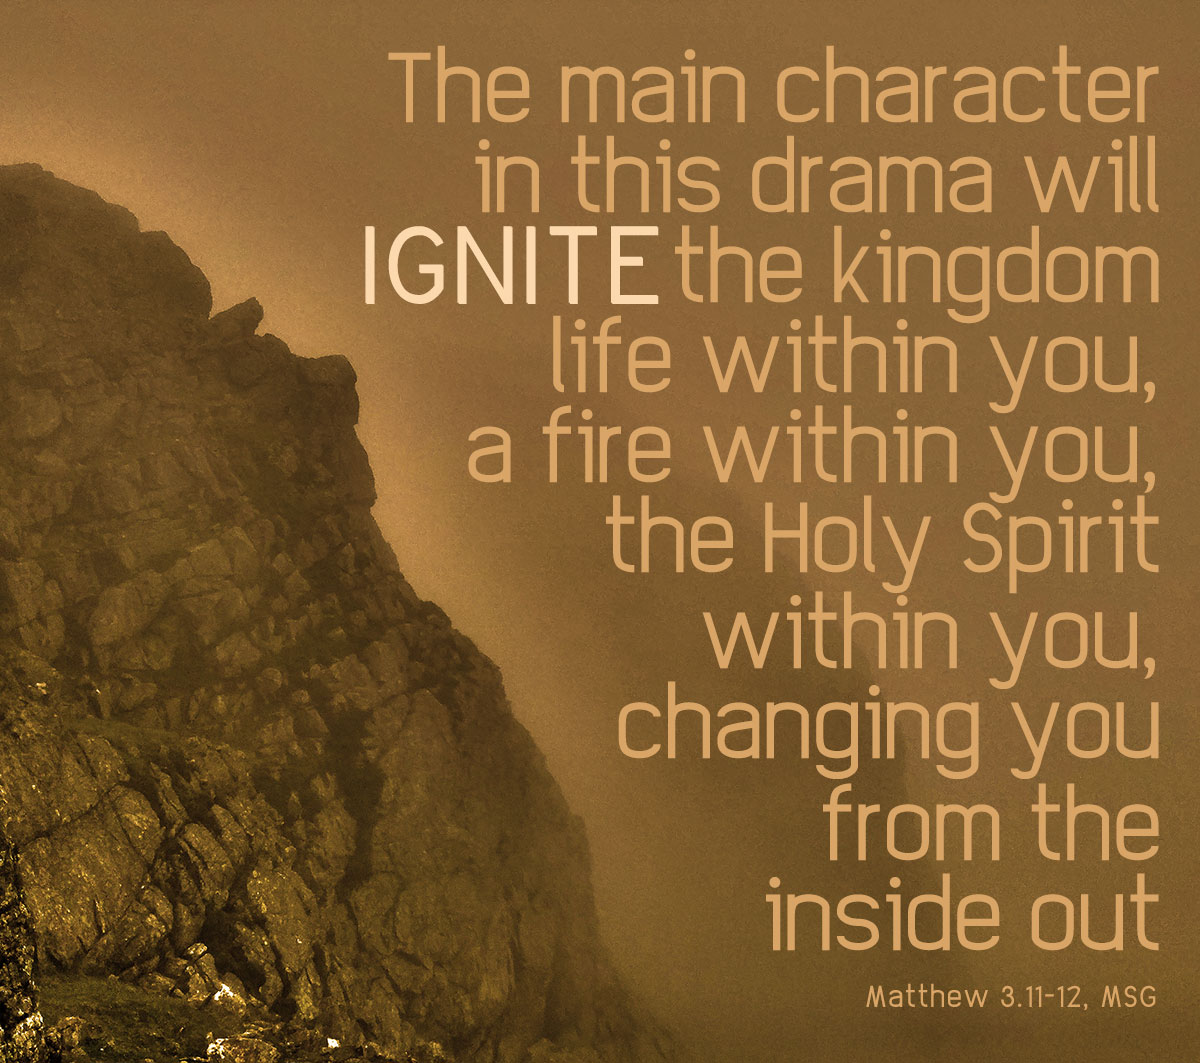 Ignite God's fire inside of you - Matthew 3.11-12